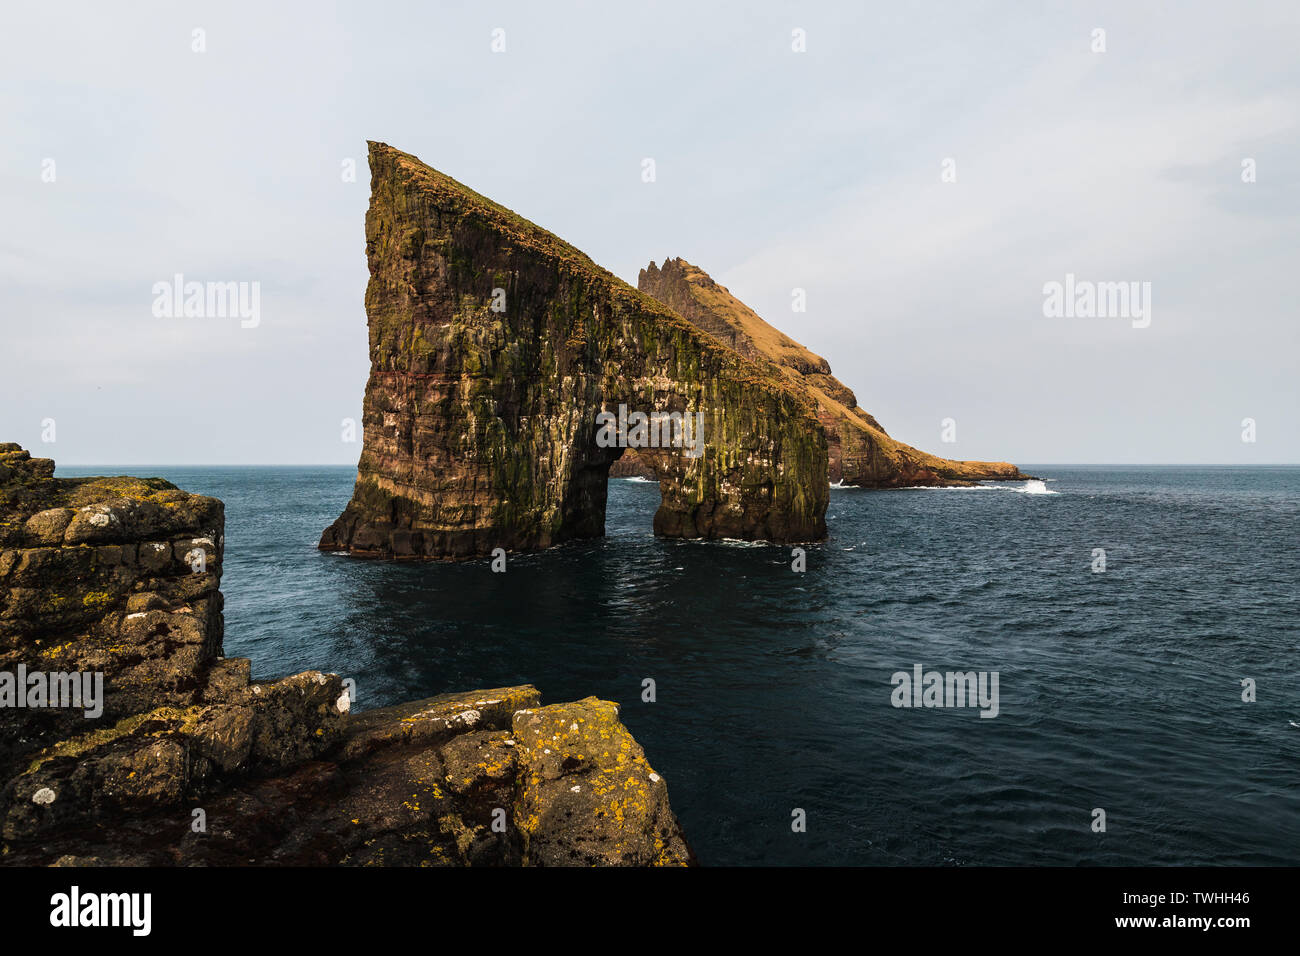 Close-up shot of famous Drangarnir cliff with Tindholmur islands in the background taken during early morning hike in spring (Faroe Island, Denmark) - Stock Image